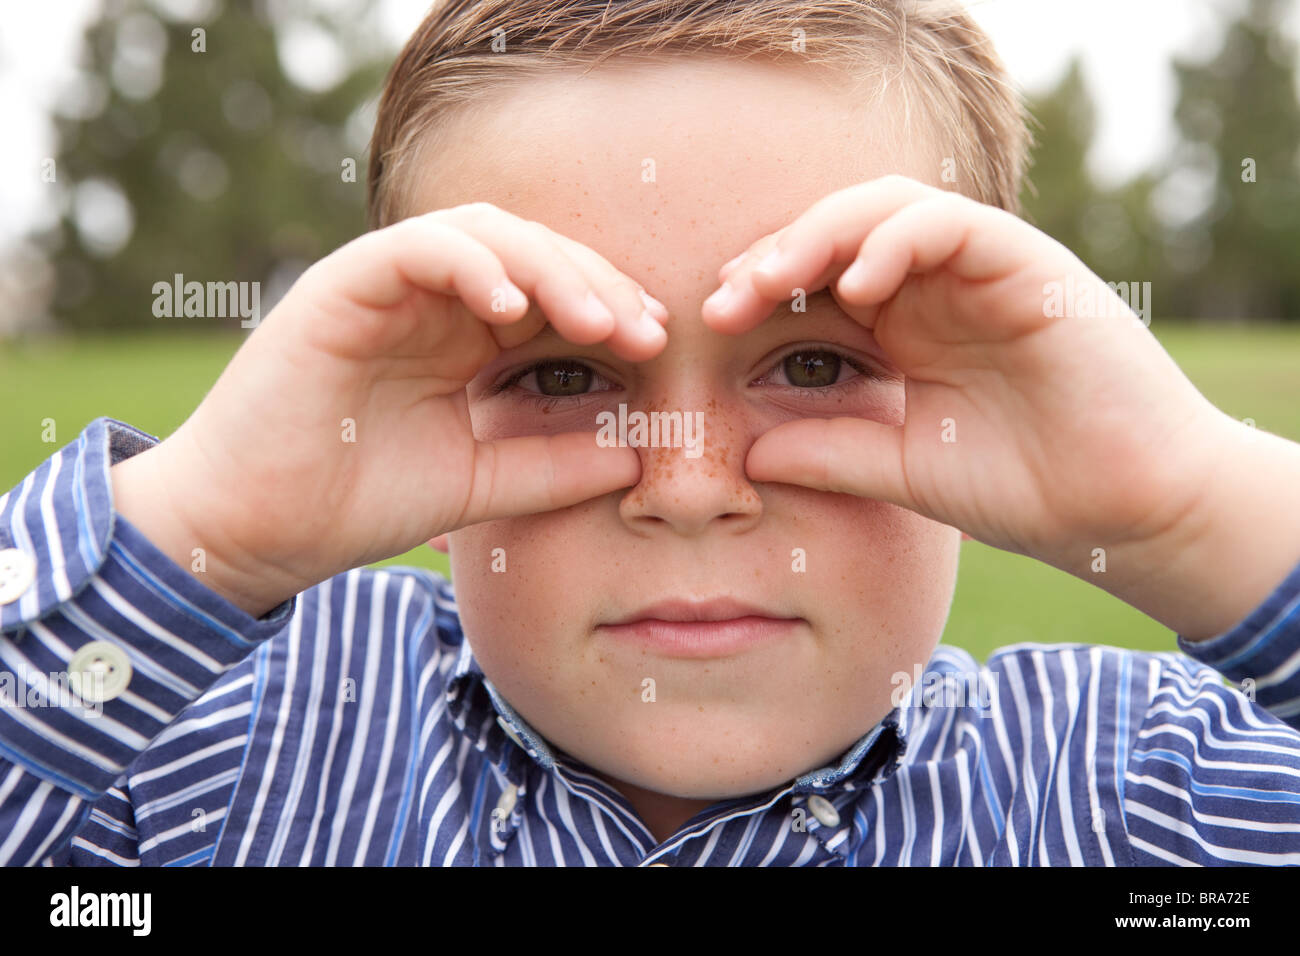 Freckled boy cupping his eyes - Stock Image